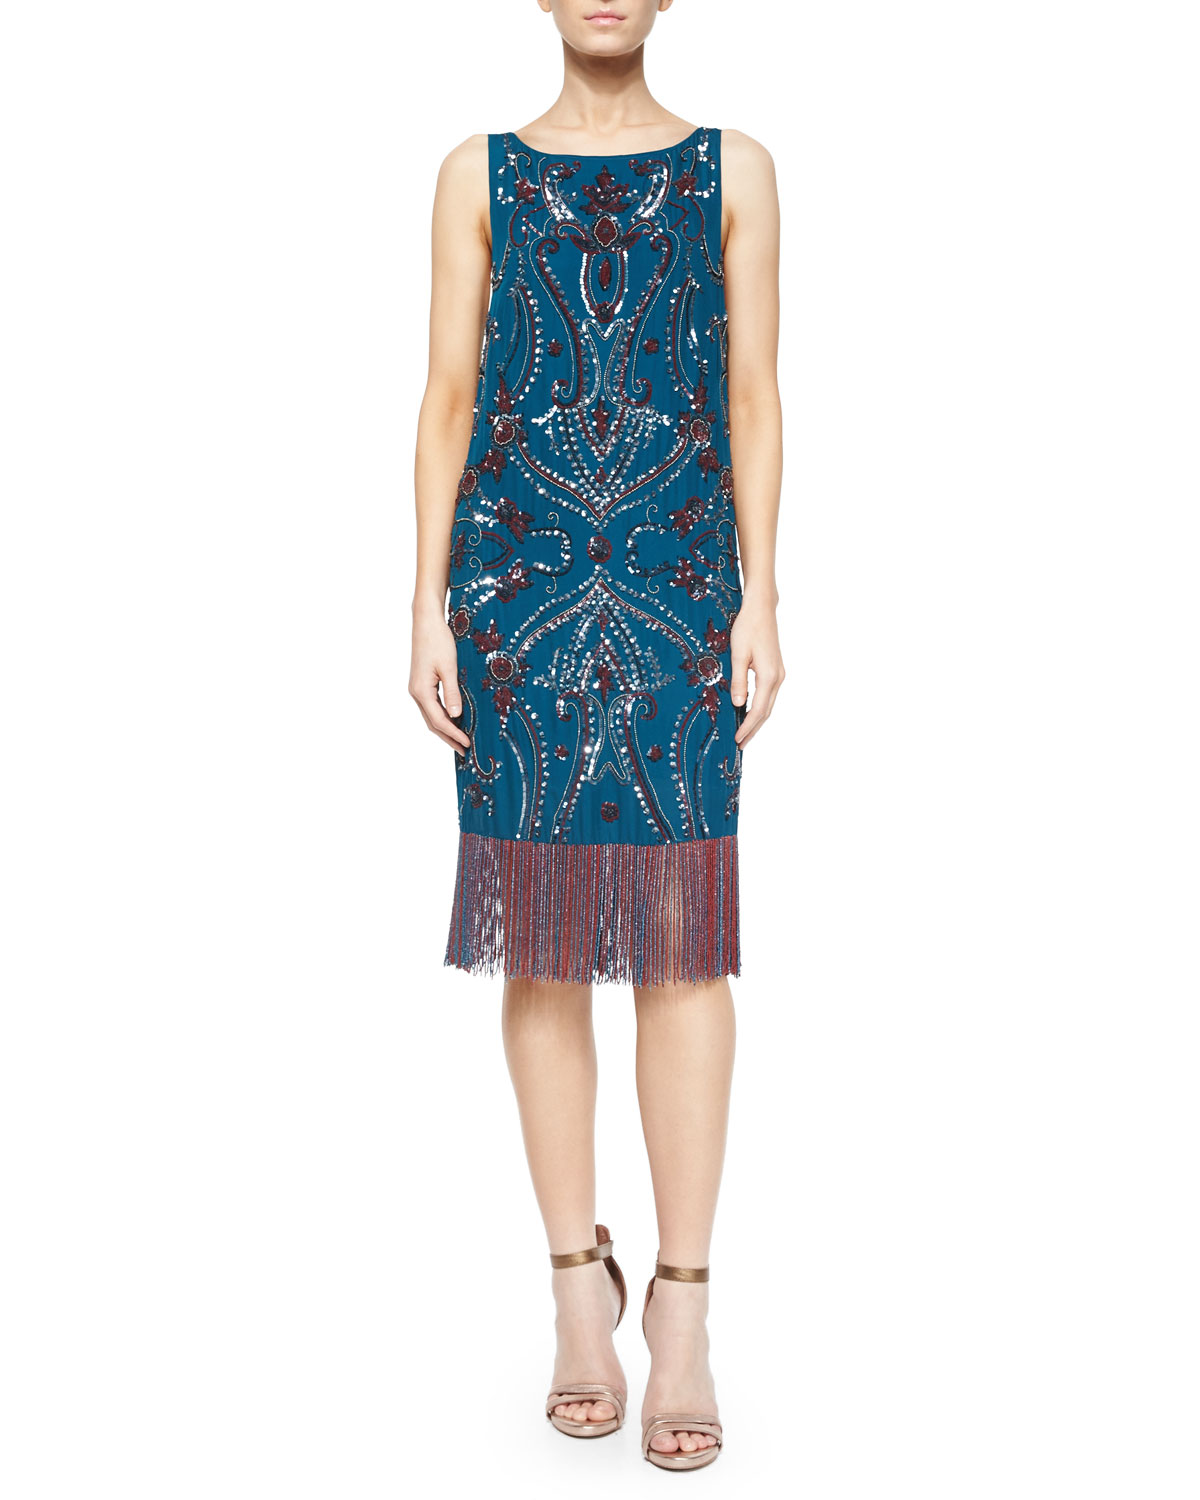 Sleeveless Embroidered Dress w/ Fringe Hem